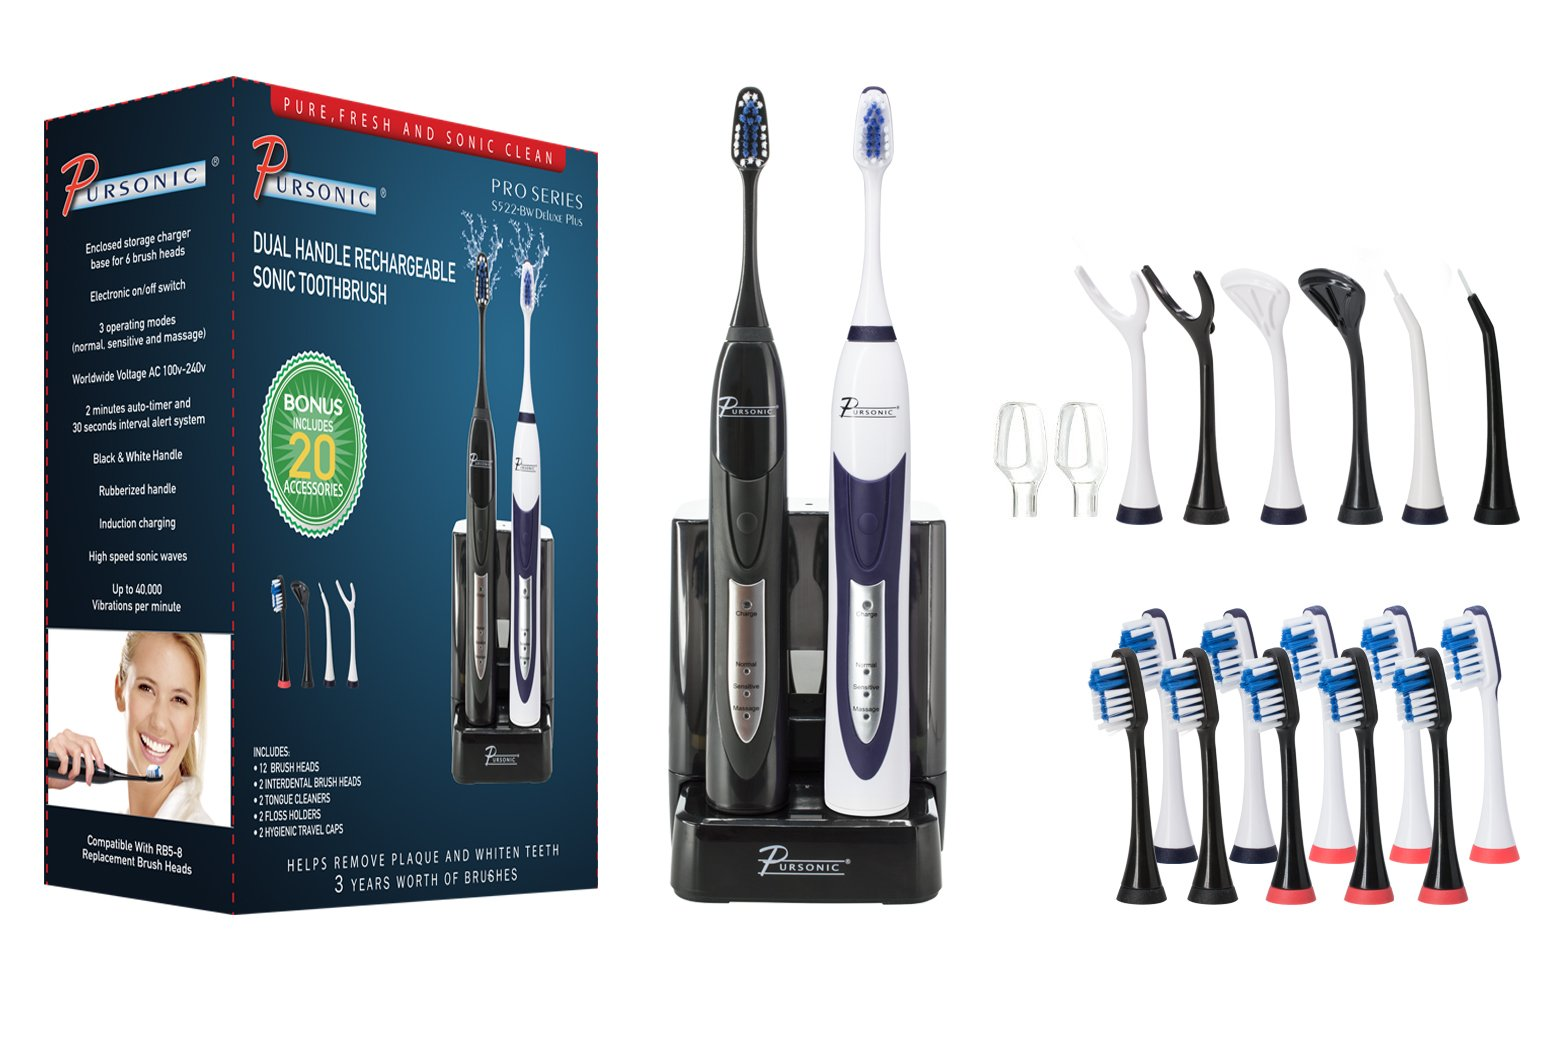 PURSONIC S522 Dual Handle Ultra High Powered Sonic Electric Toothbrush with Dock Charger, 12 Brush Heads & More! (Black and White)